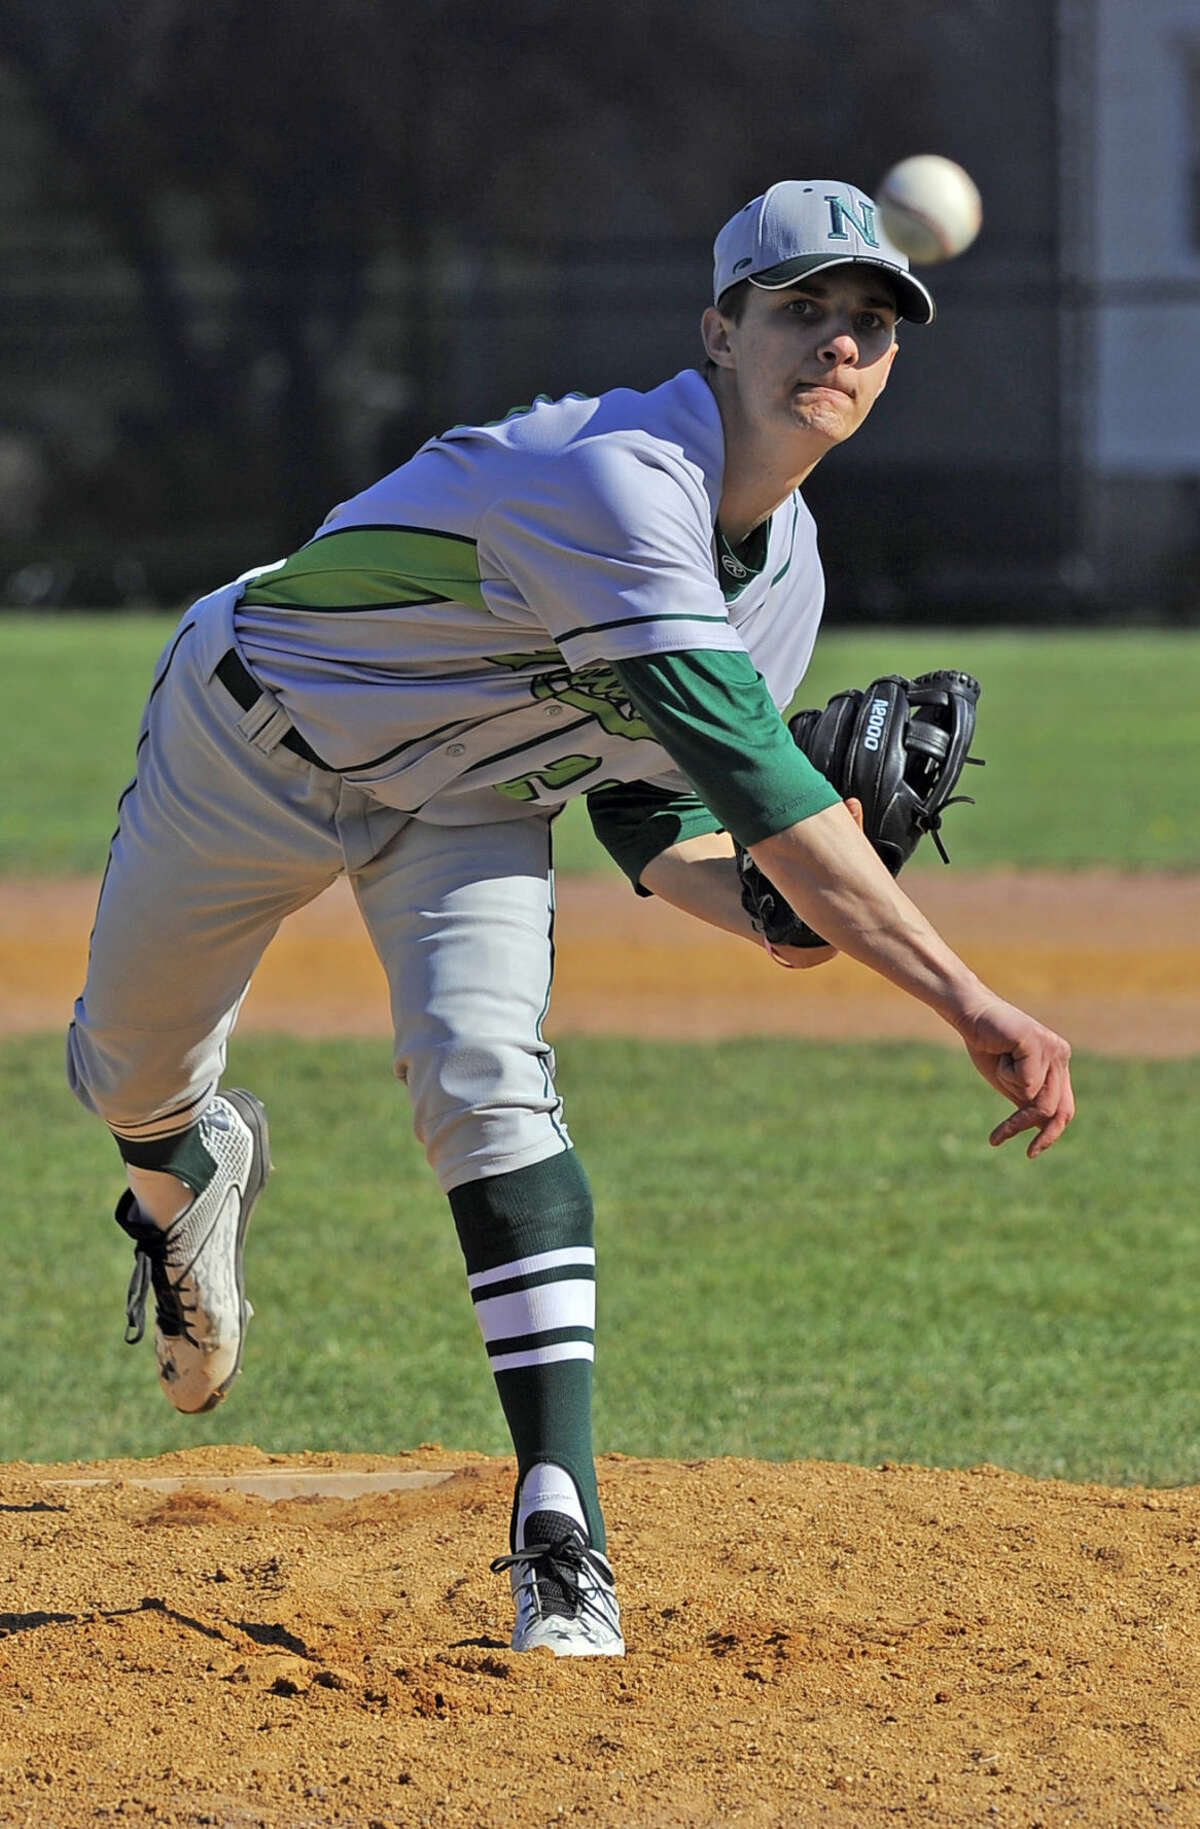 Norwalk pitcher Isaac Keehn delivers a throw to Stamford in the first inning of a FCIAC boys baseball game at Stamford High School on April 15, 2016. Norwalk defeated Stamford 8-7.